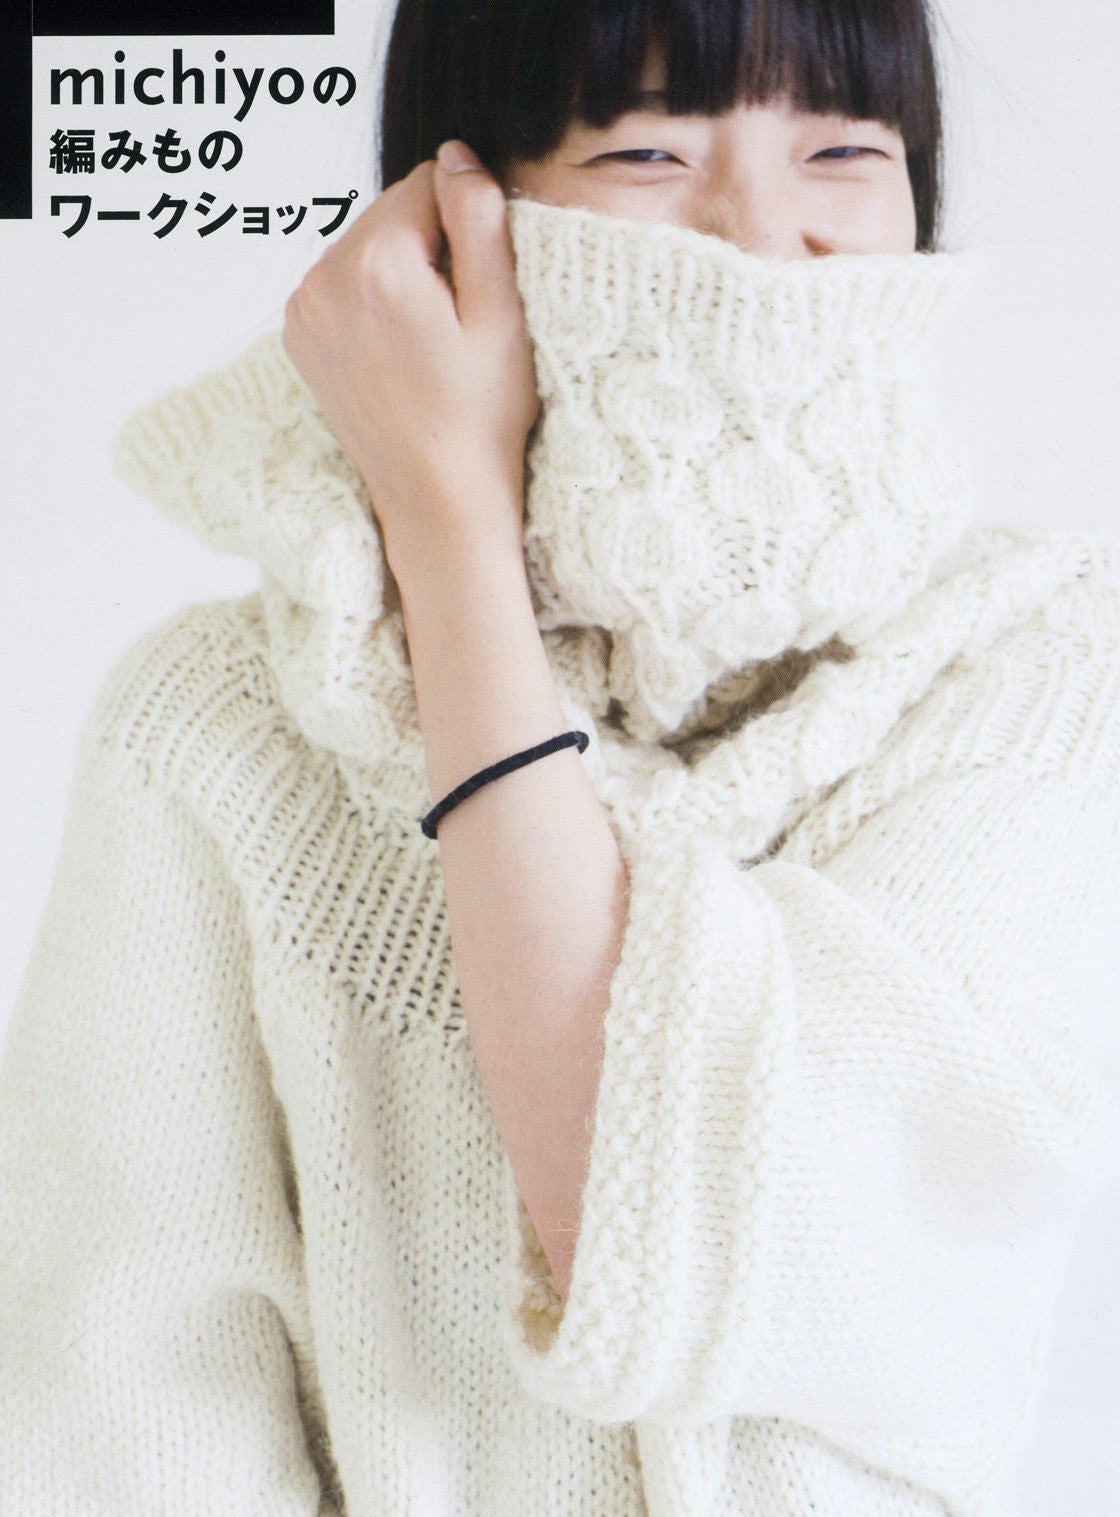 michiyo's Knitting Workshop